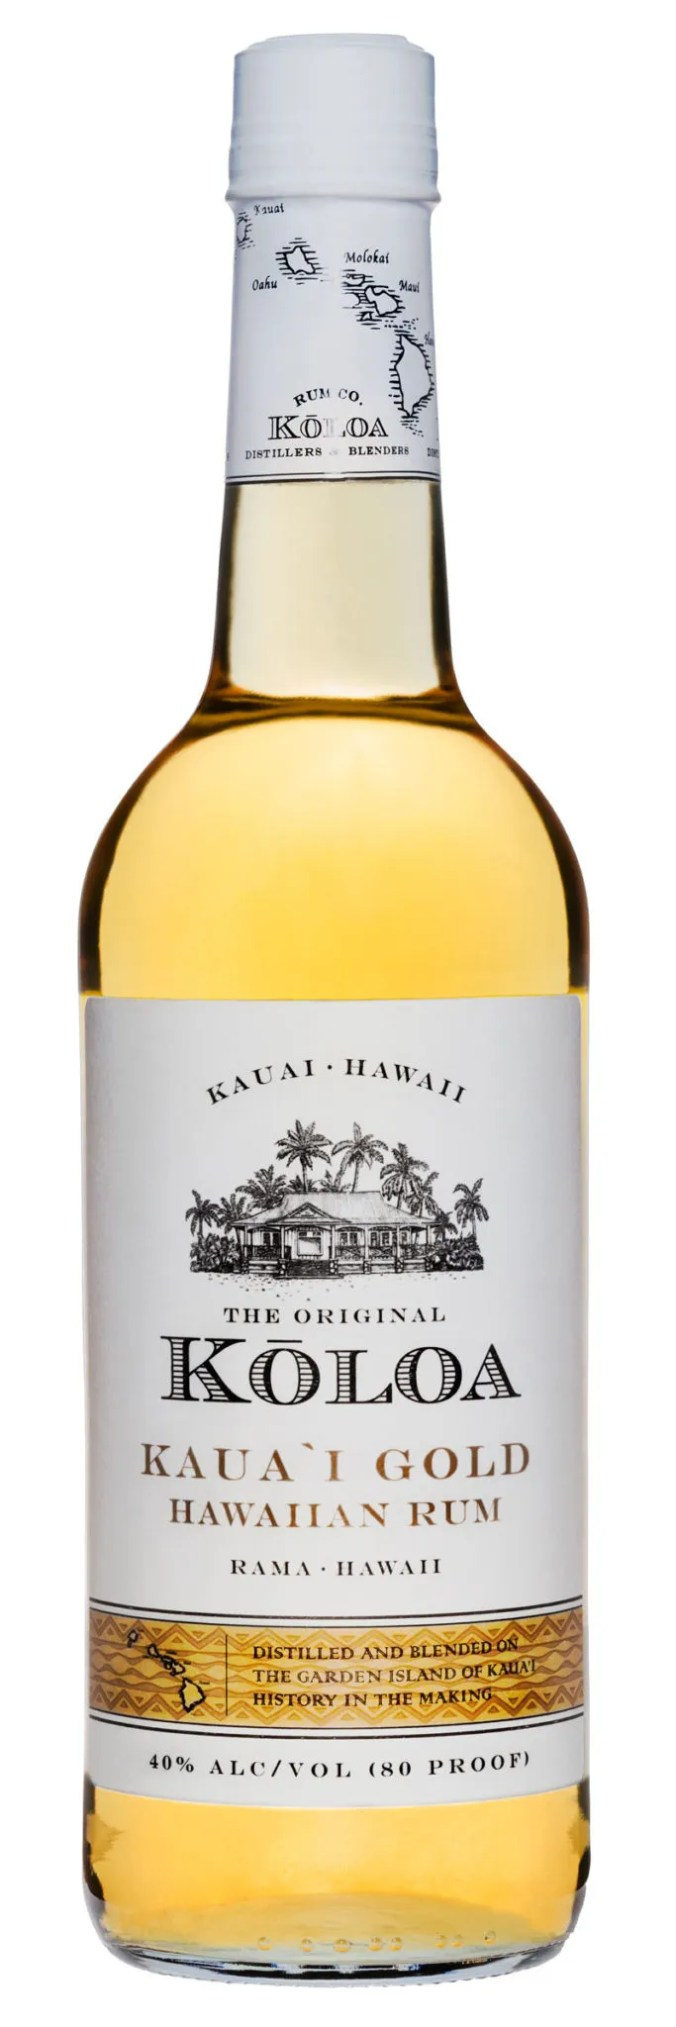 Koloa Gold rum from Hawaii